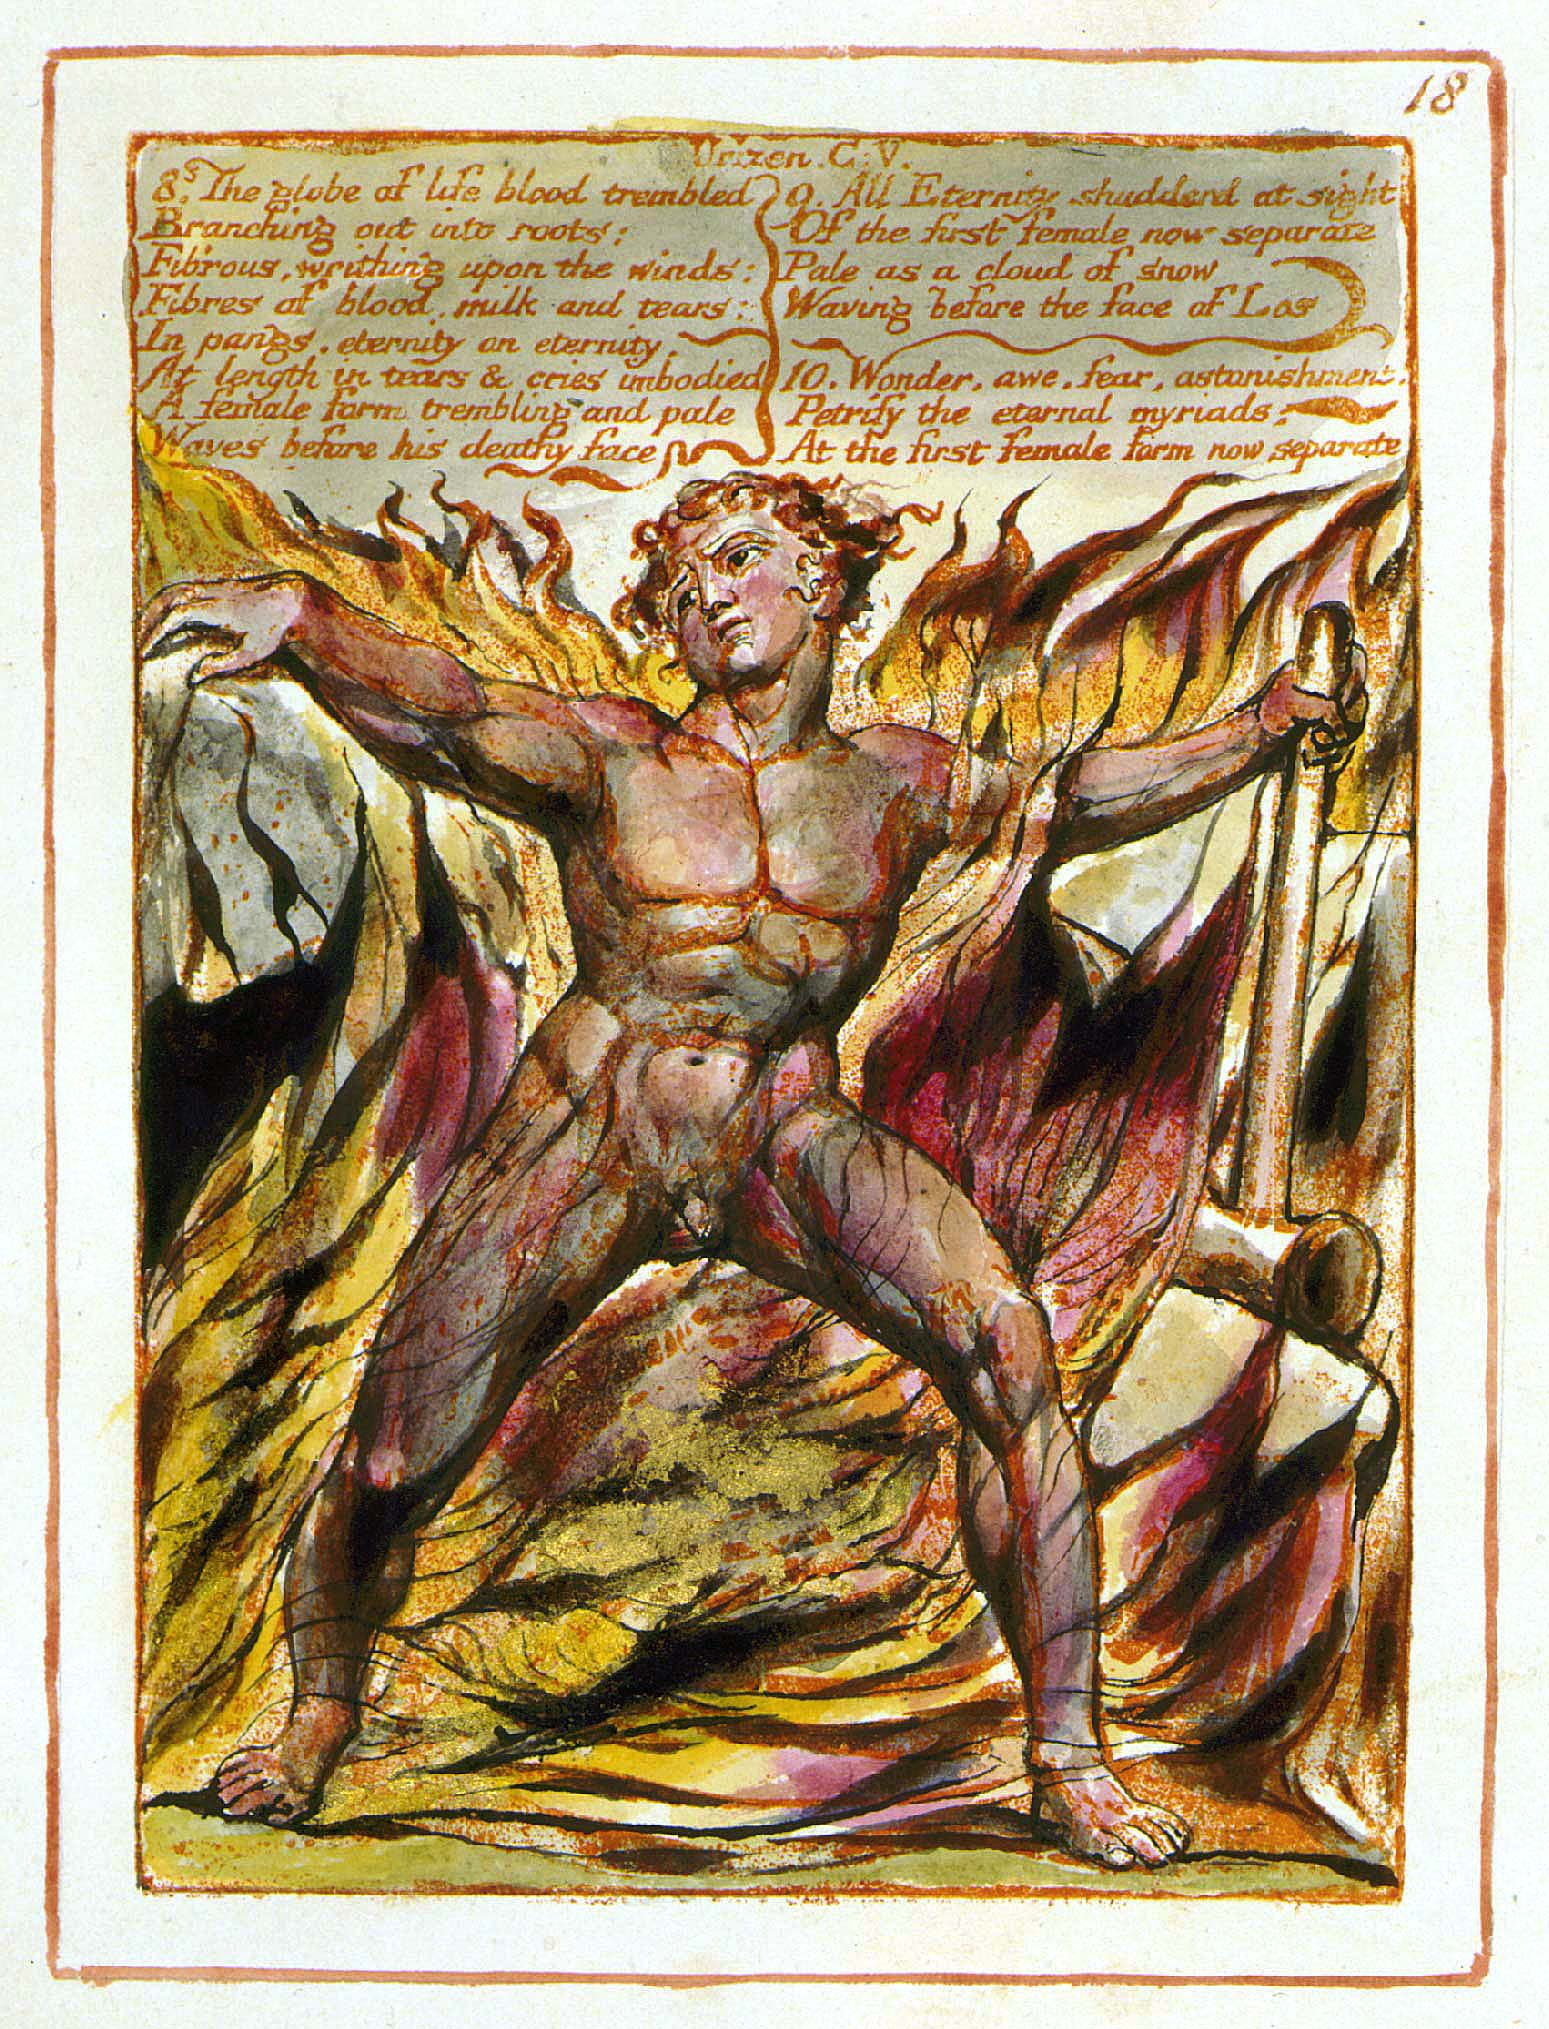 an examination of the character of urizen by william blake